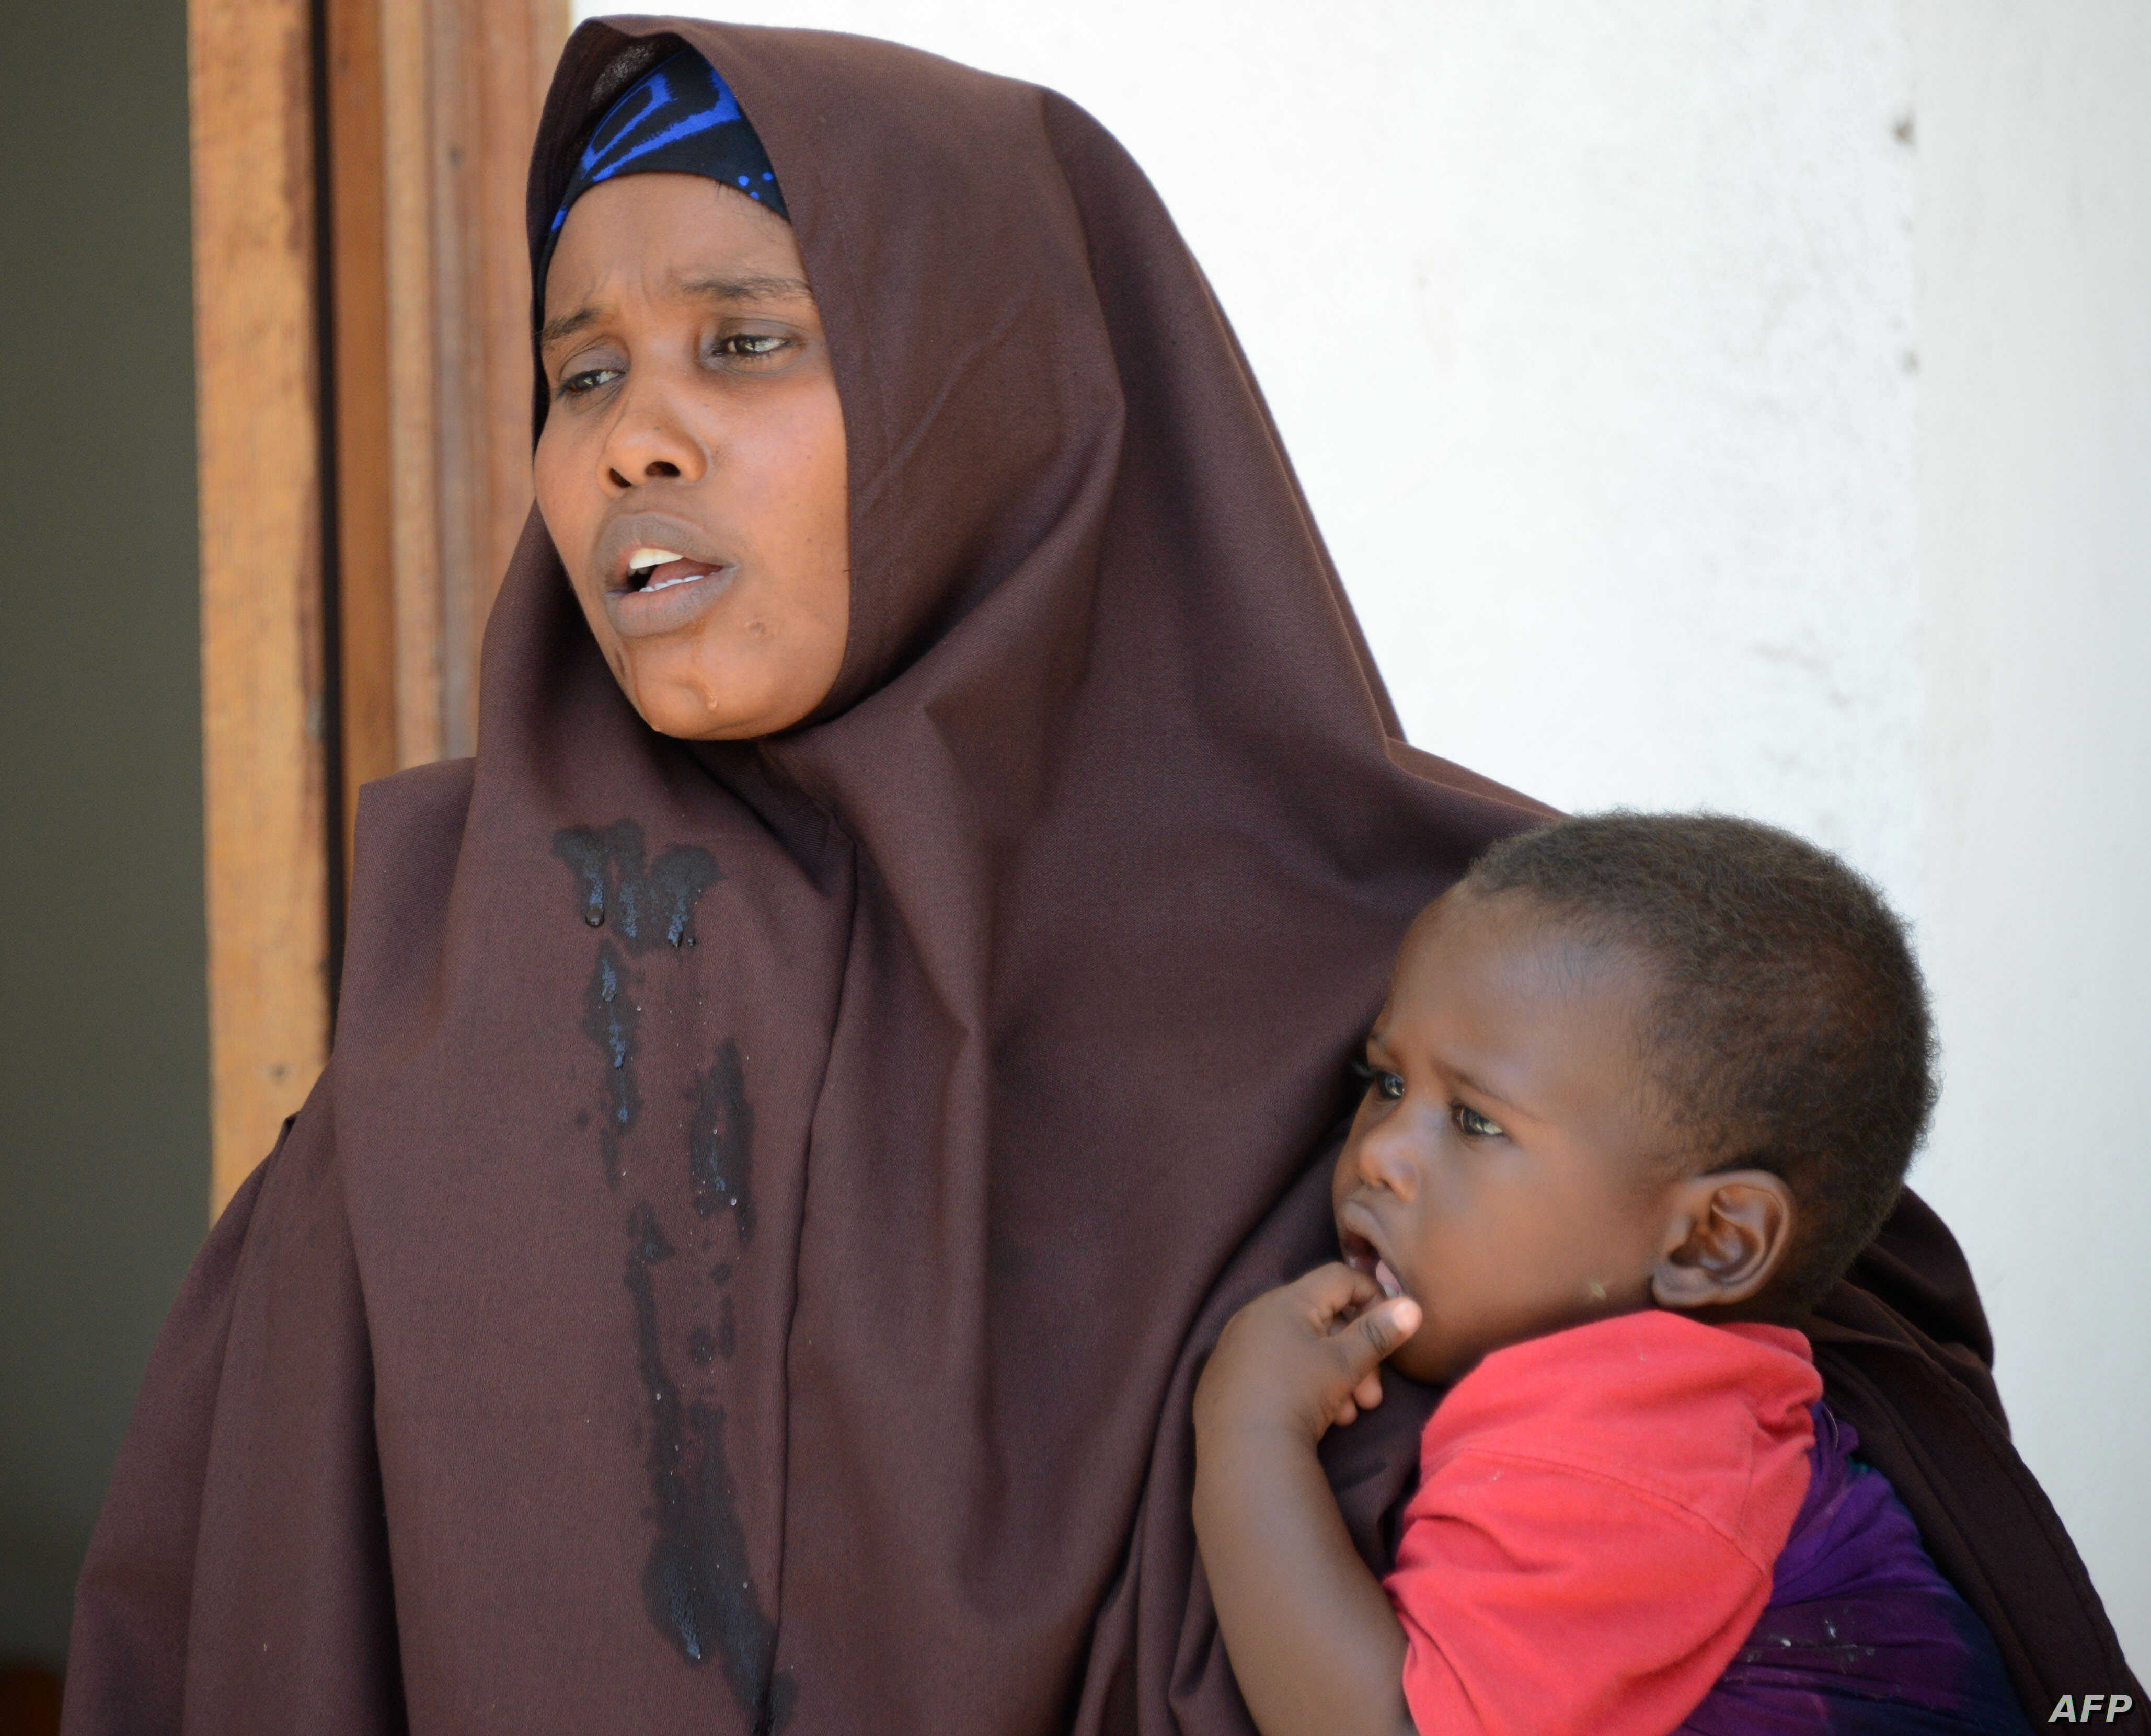 Report: Somali Minorities Vulnerable to Sexual Violence | Voice of